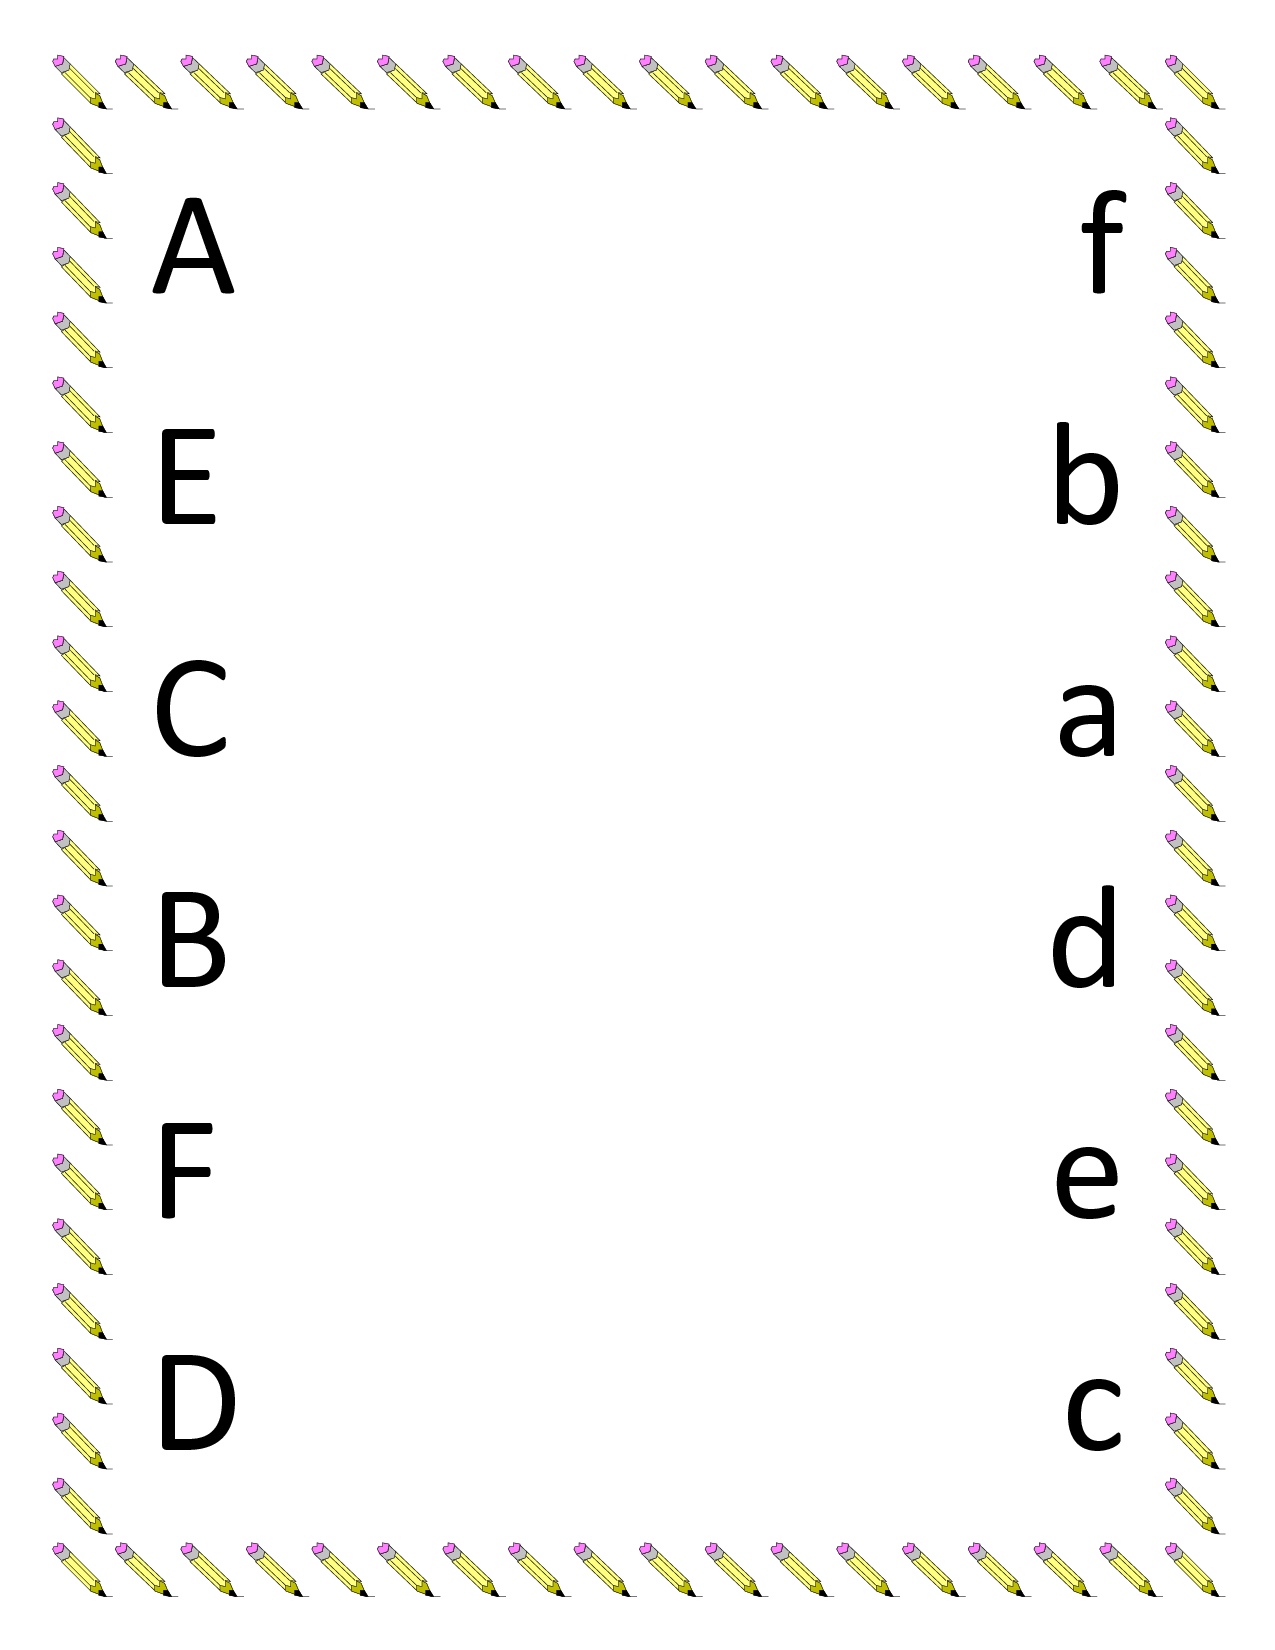 Worksheet Preschool Matching Worksheets alphabet kid and preschool worksheets on pinterest